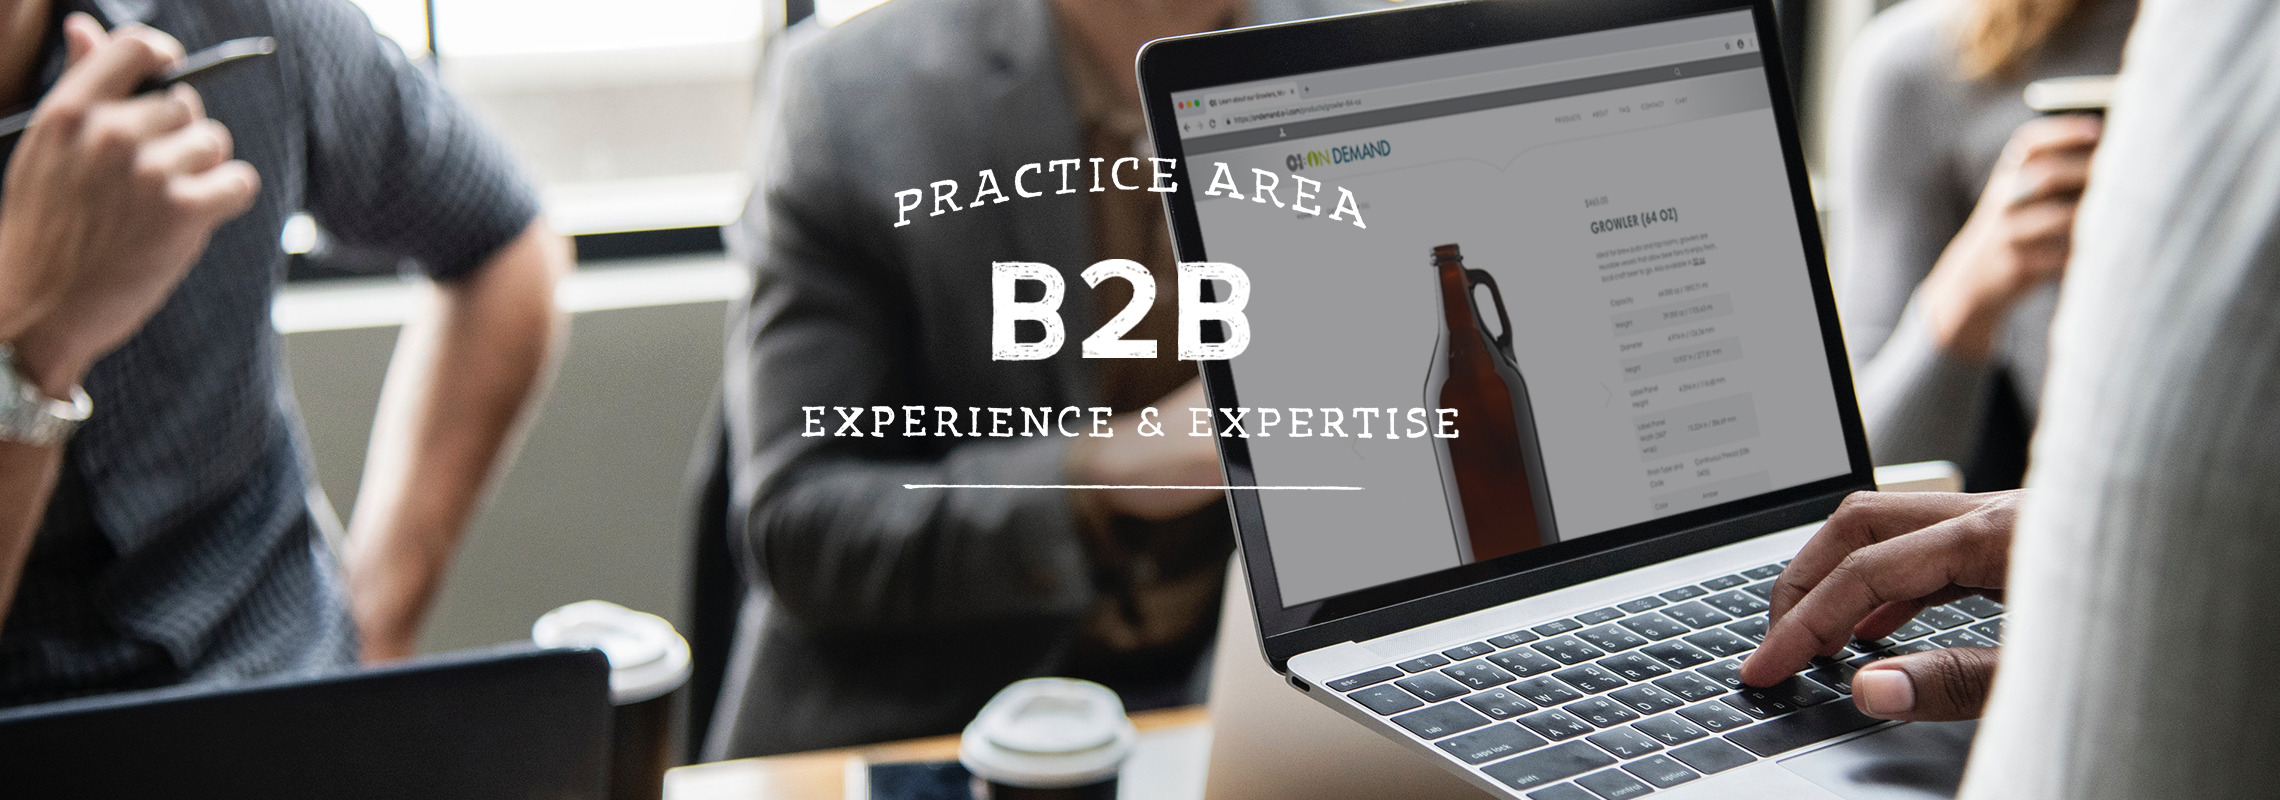 B2B Practice Area, Experience and Expertise